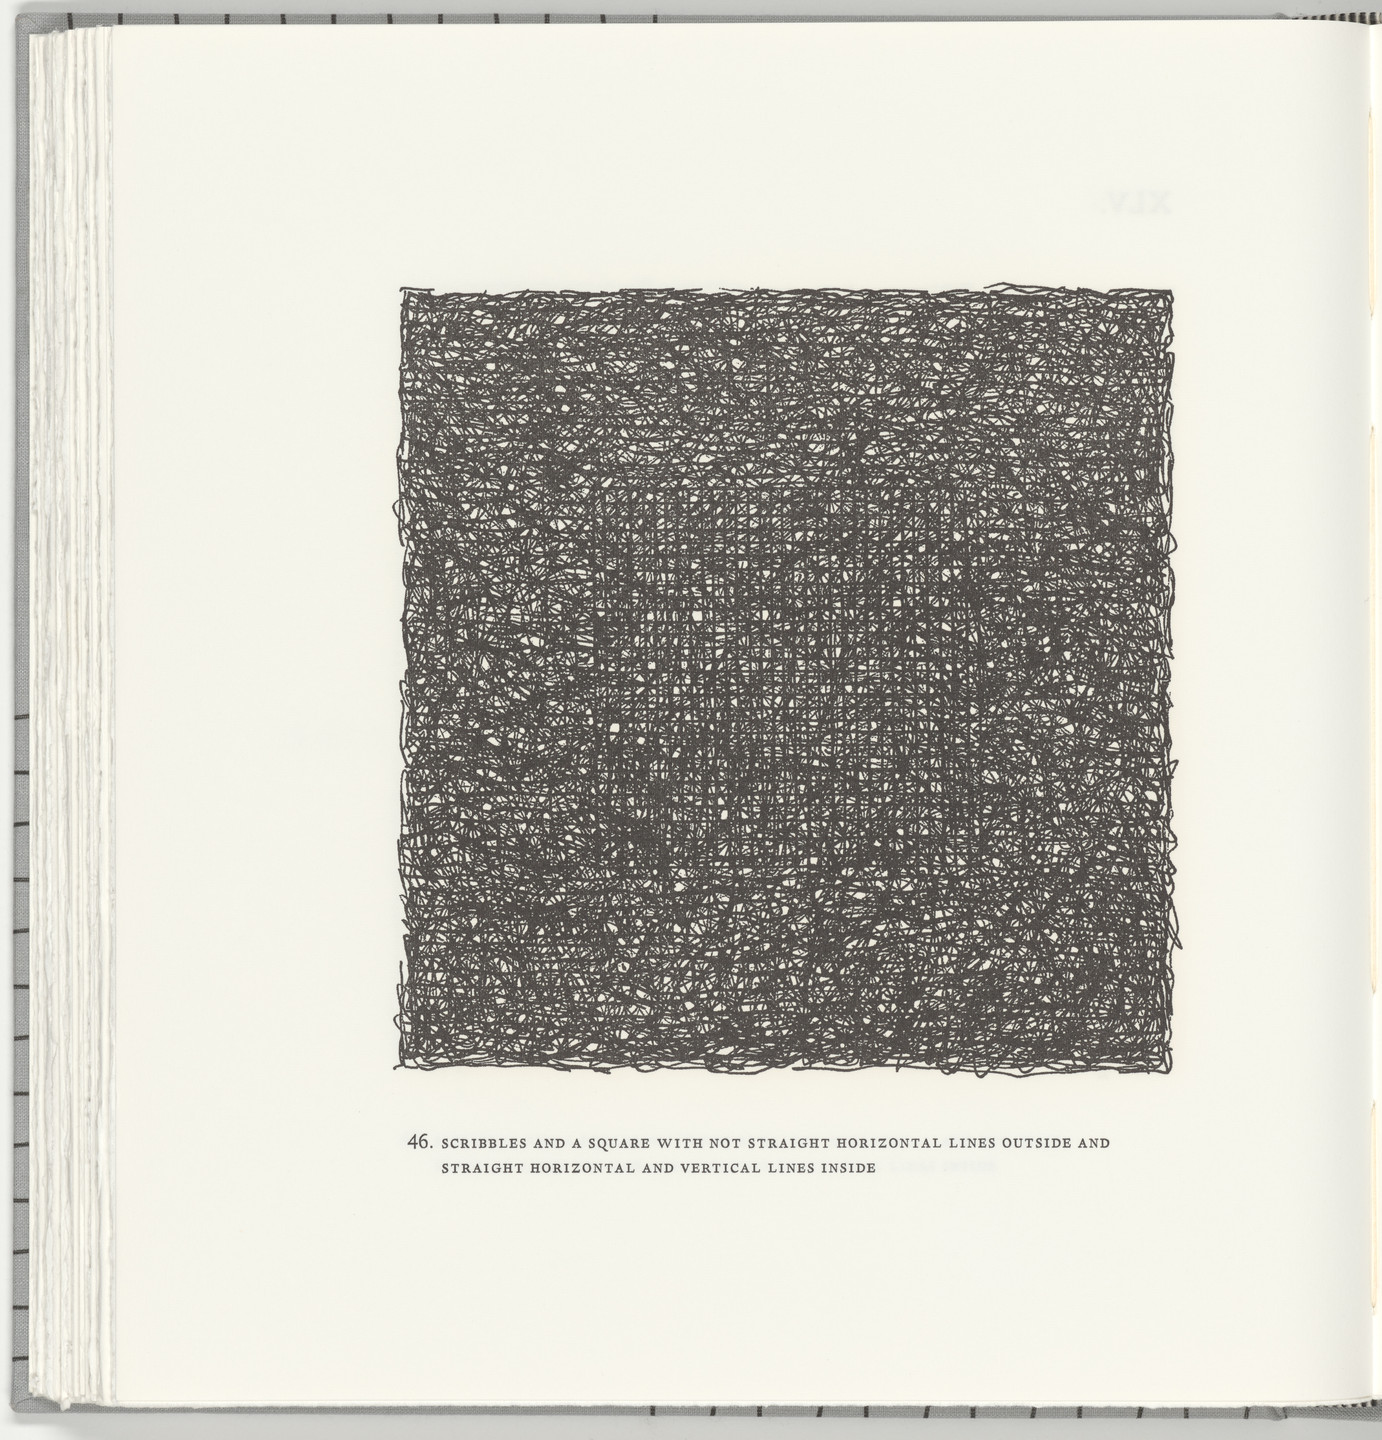 Sol LeWitt. Scribbles and a Square with Not Straight Horizontal Lines Outside and Straight Horizontal and Vertical Lines Inside(plate 46) from Squarings. 2003